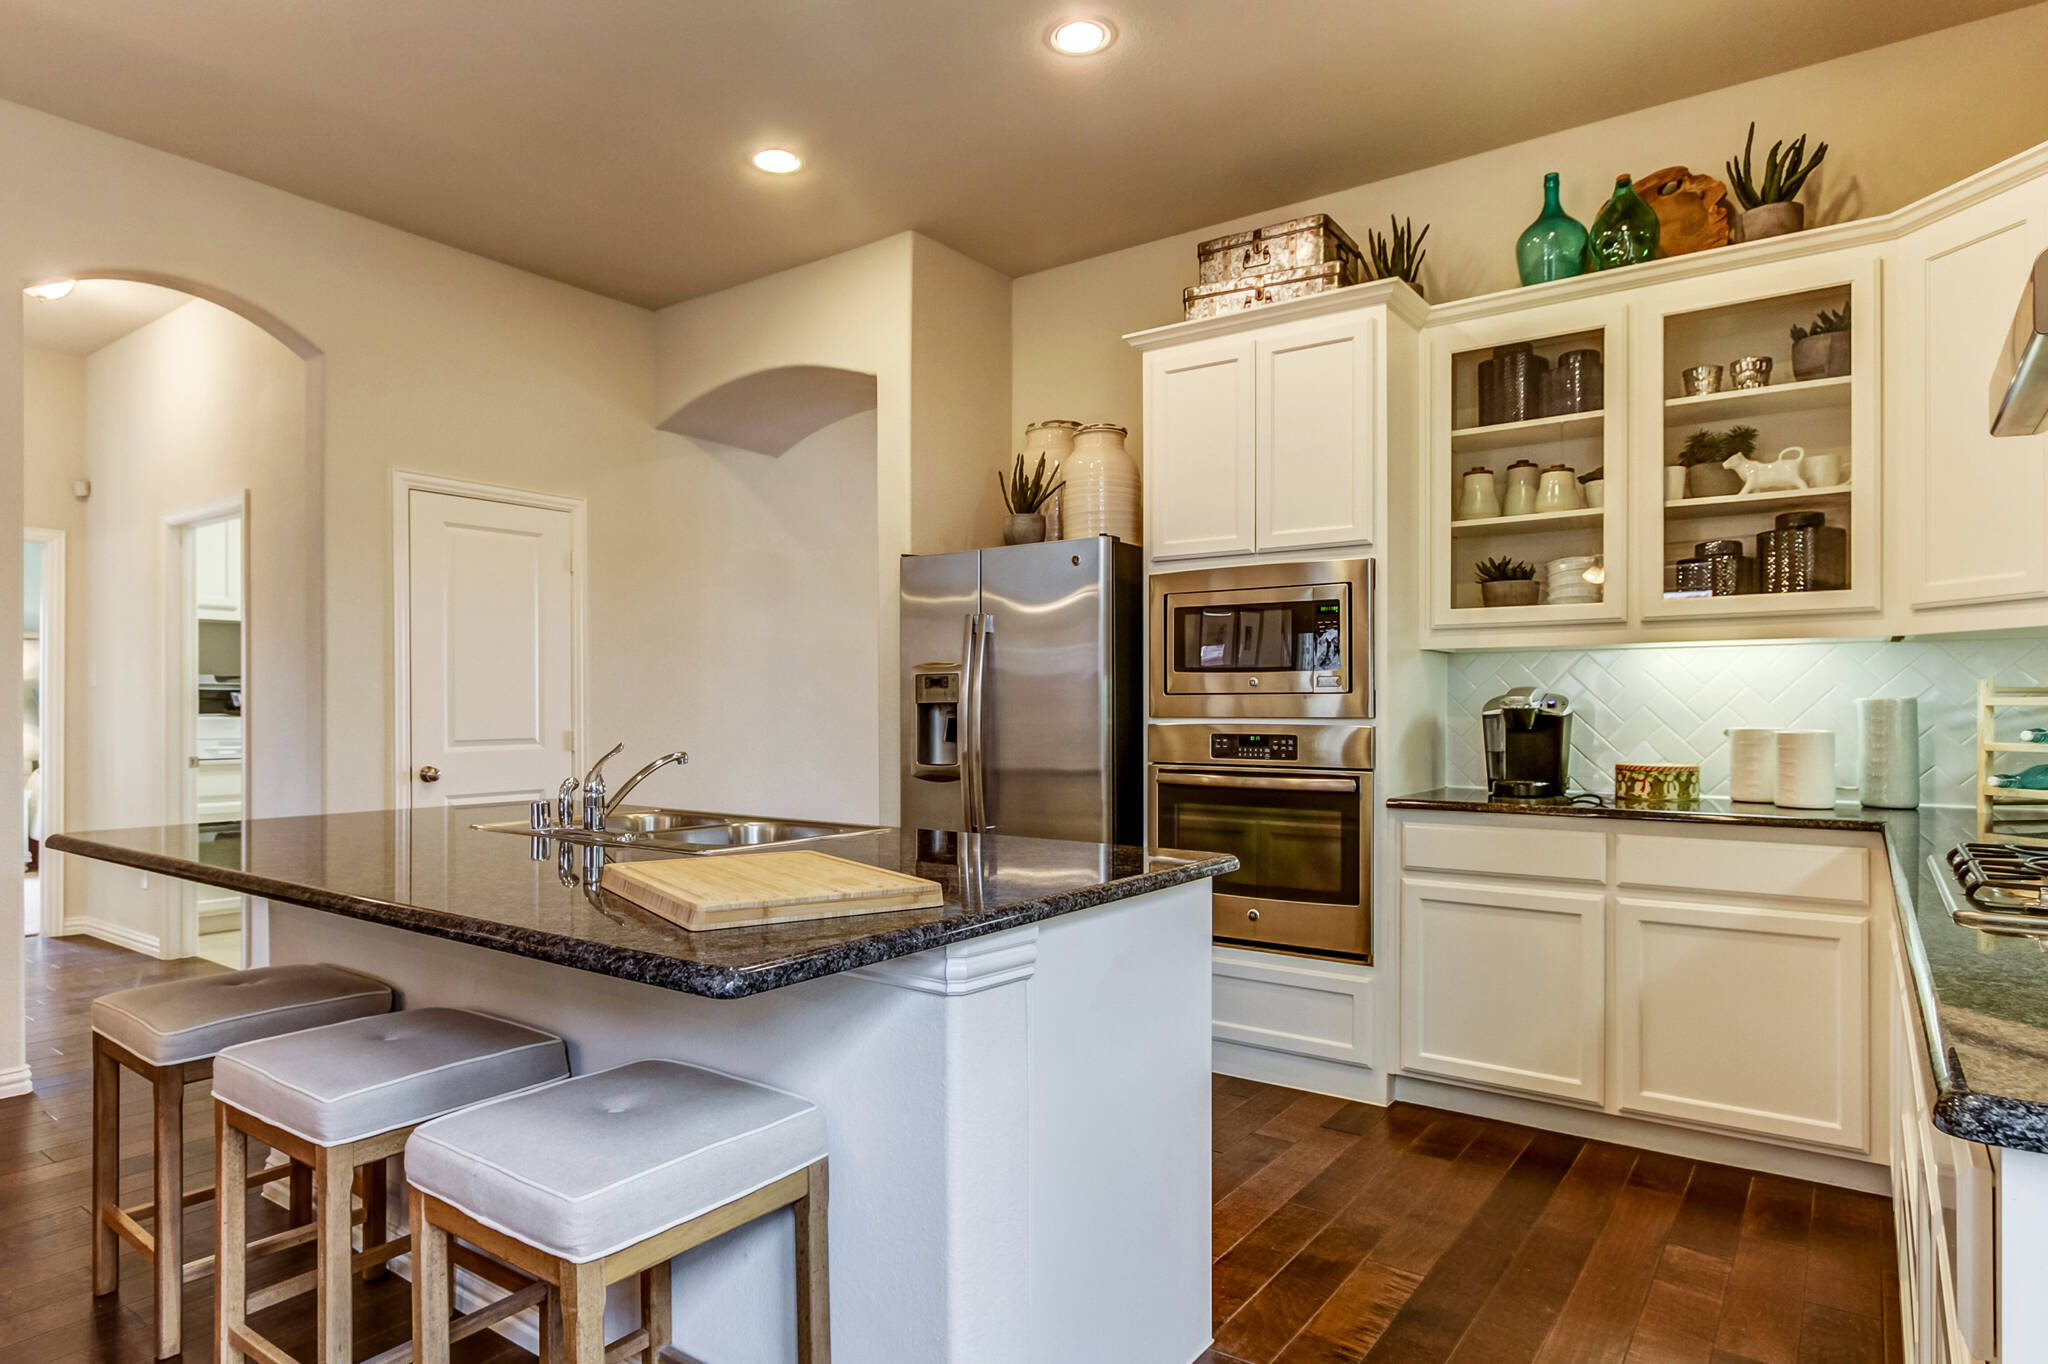 2711 Independence_2048x1364 MODEL_edited_Kitchen